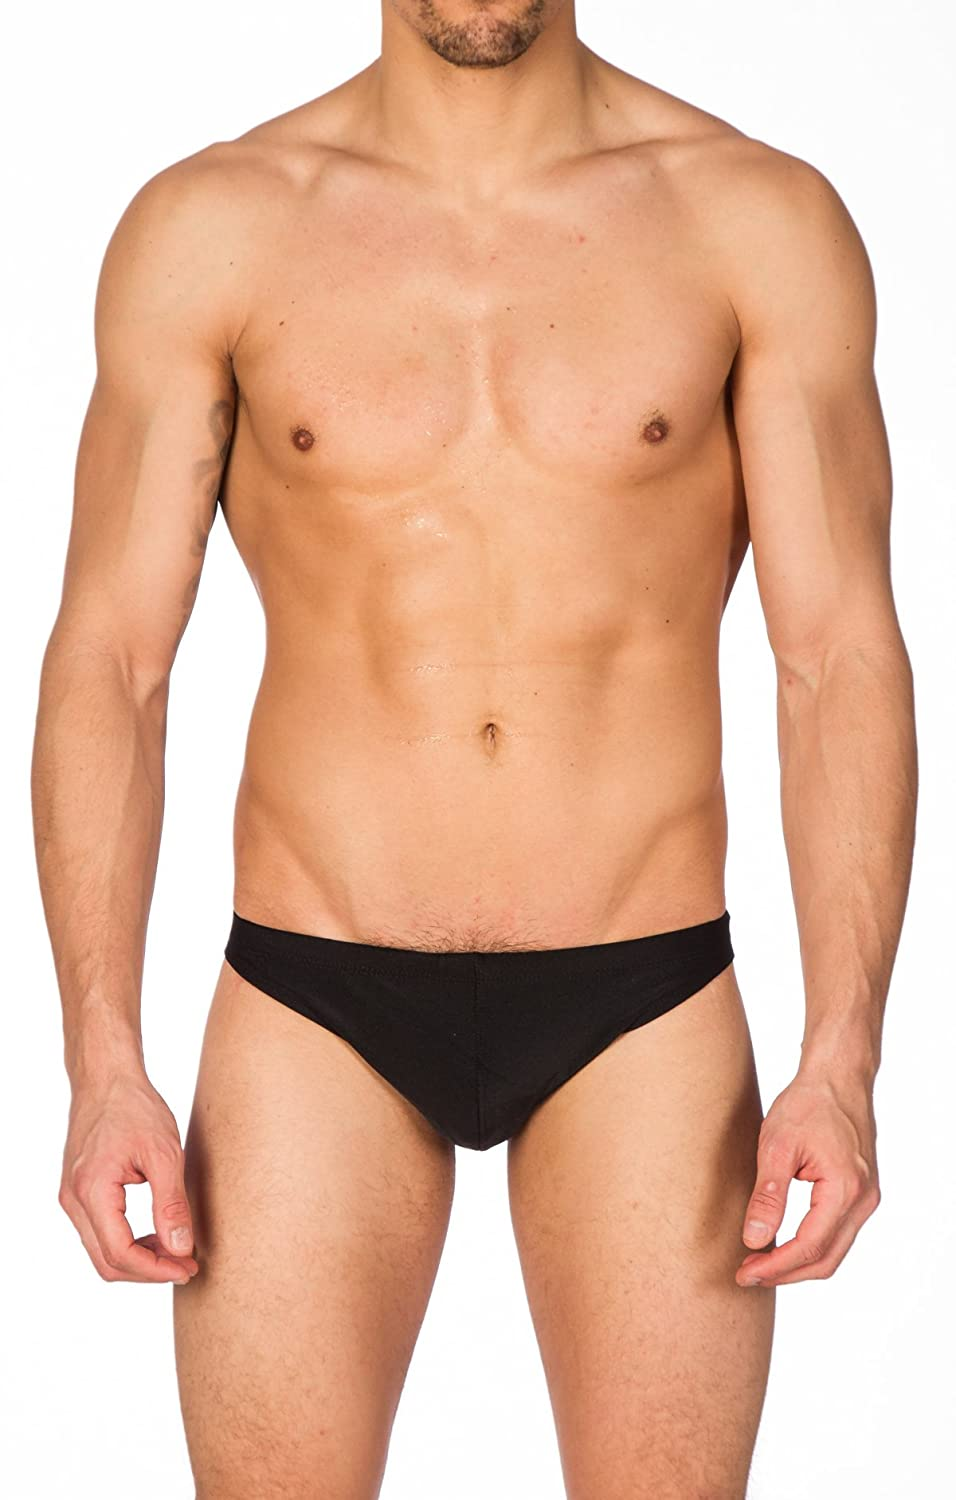 d8adcaf3a0 Amazon.com: Gary Majdell Sport Men's Greek Bikini Swimsuit with Contour  Pouch: Clothing